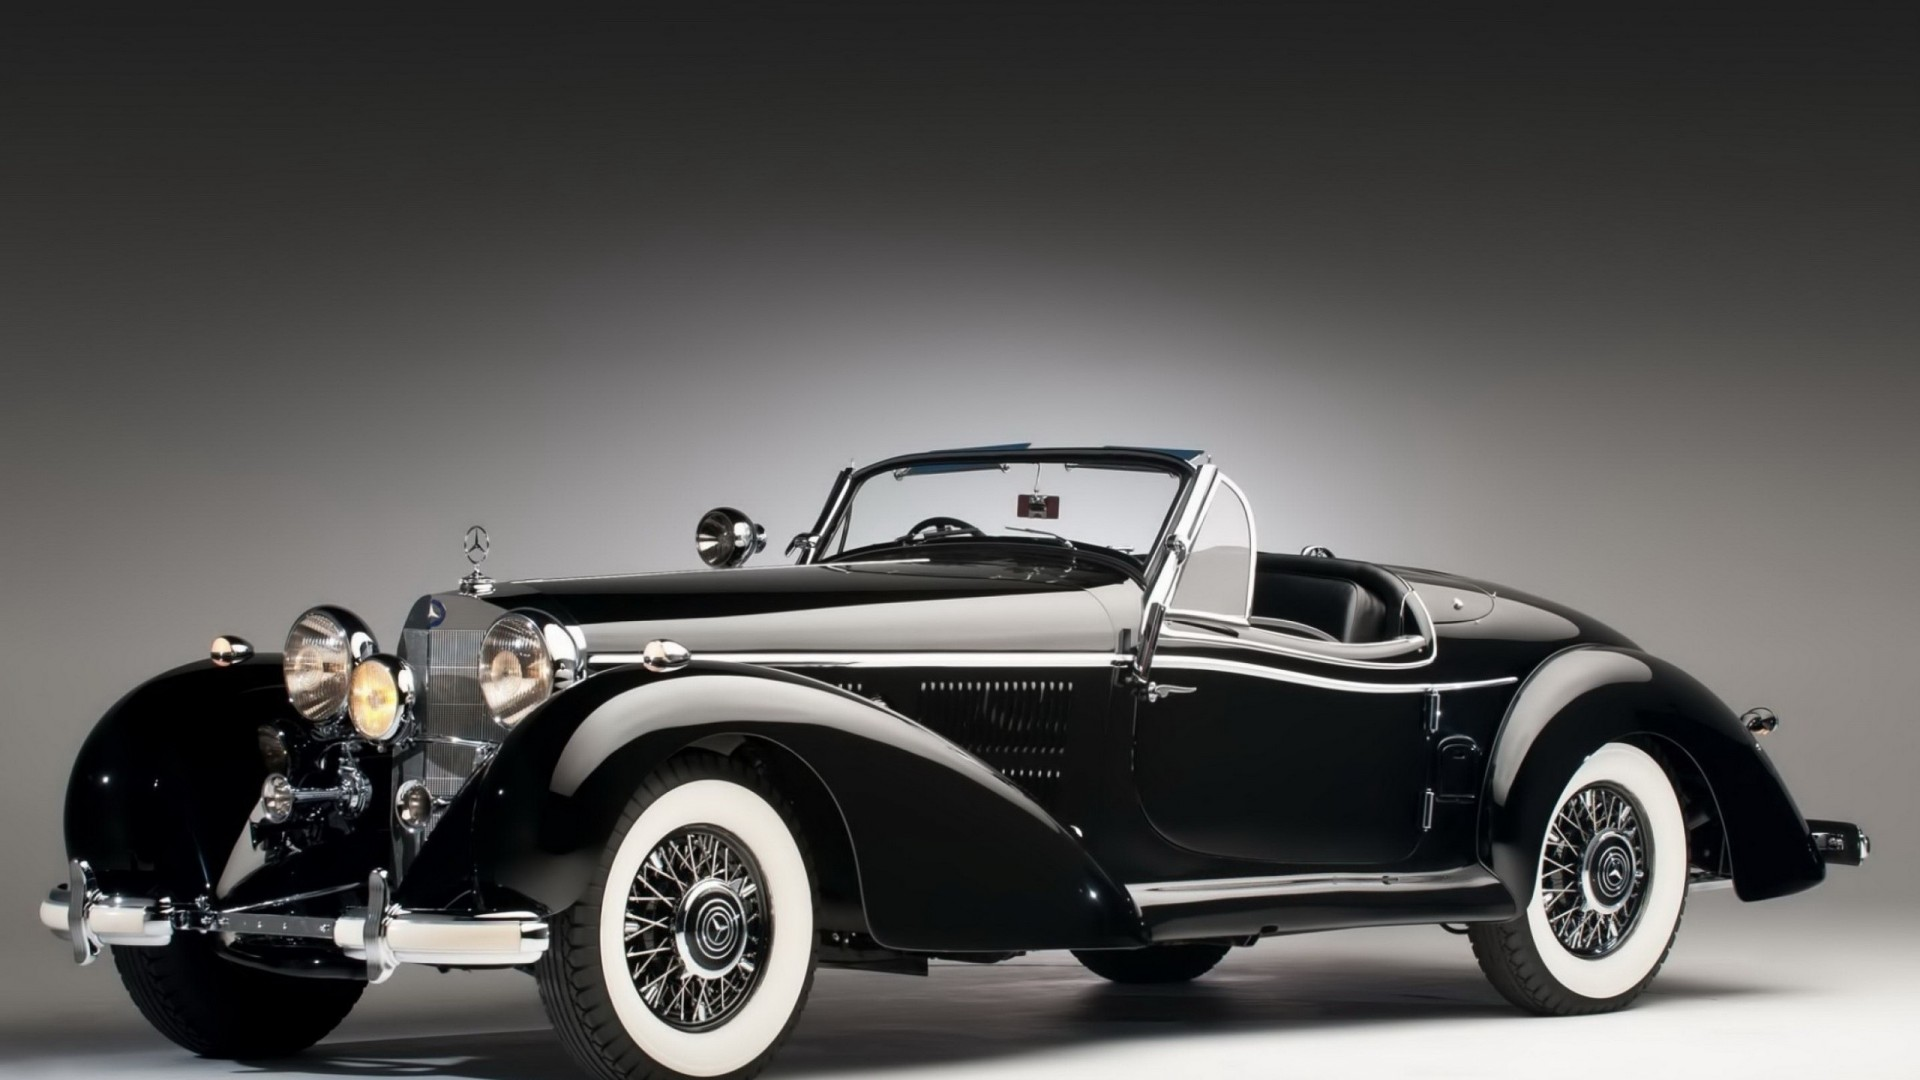 Vintage Cars Wallpapers | Best Wallpapers Hd Wallpapers 1920x1080 Cars